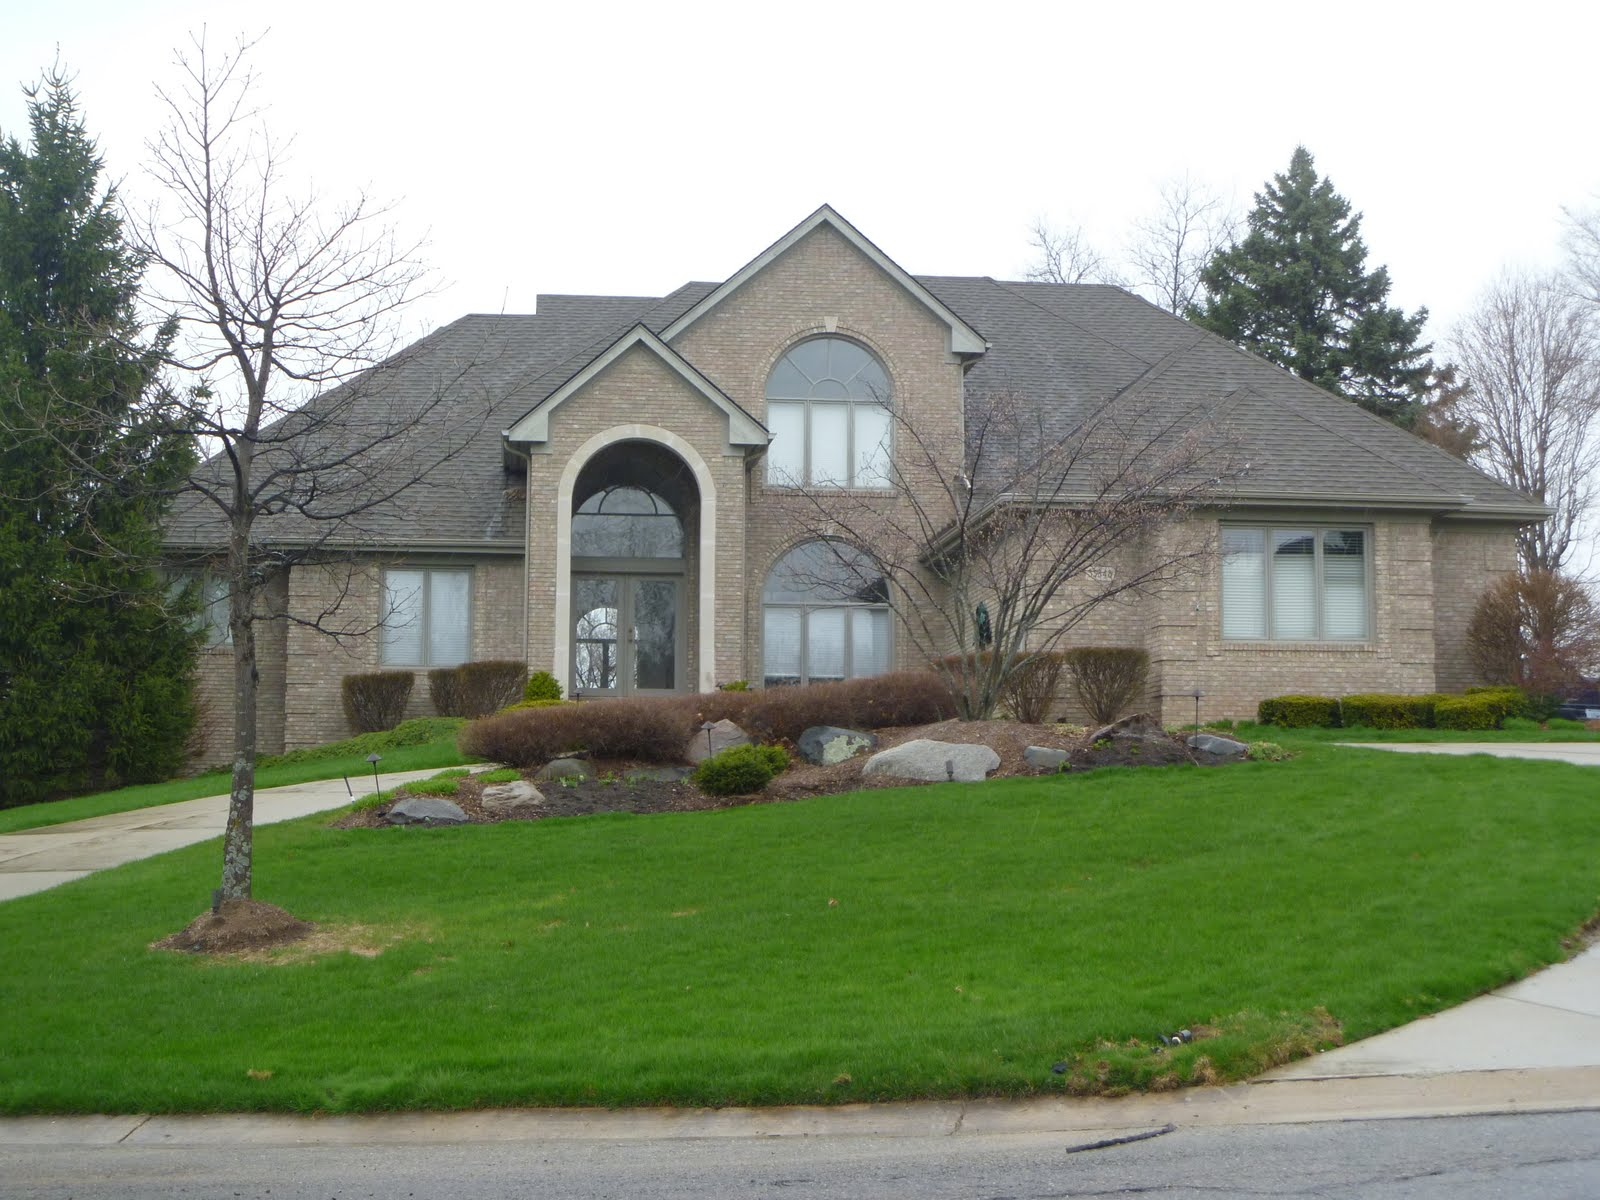 Homes for sale in farmington hills mi blog subdivision for 3 4 houses in michigan